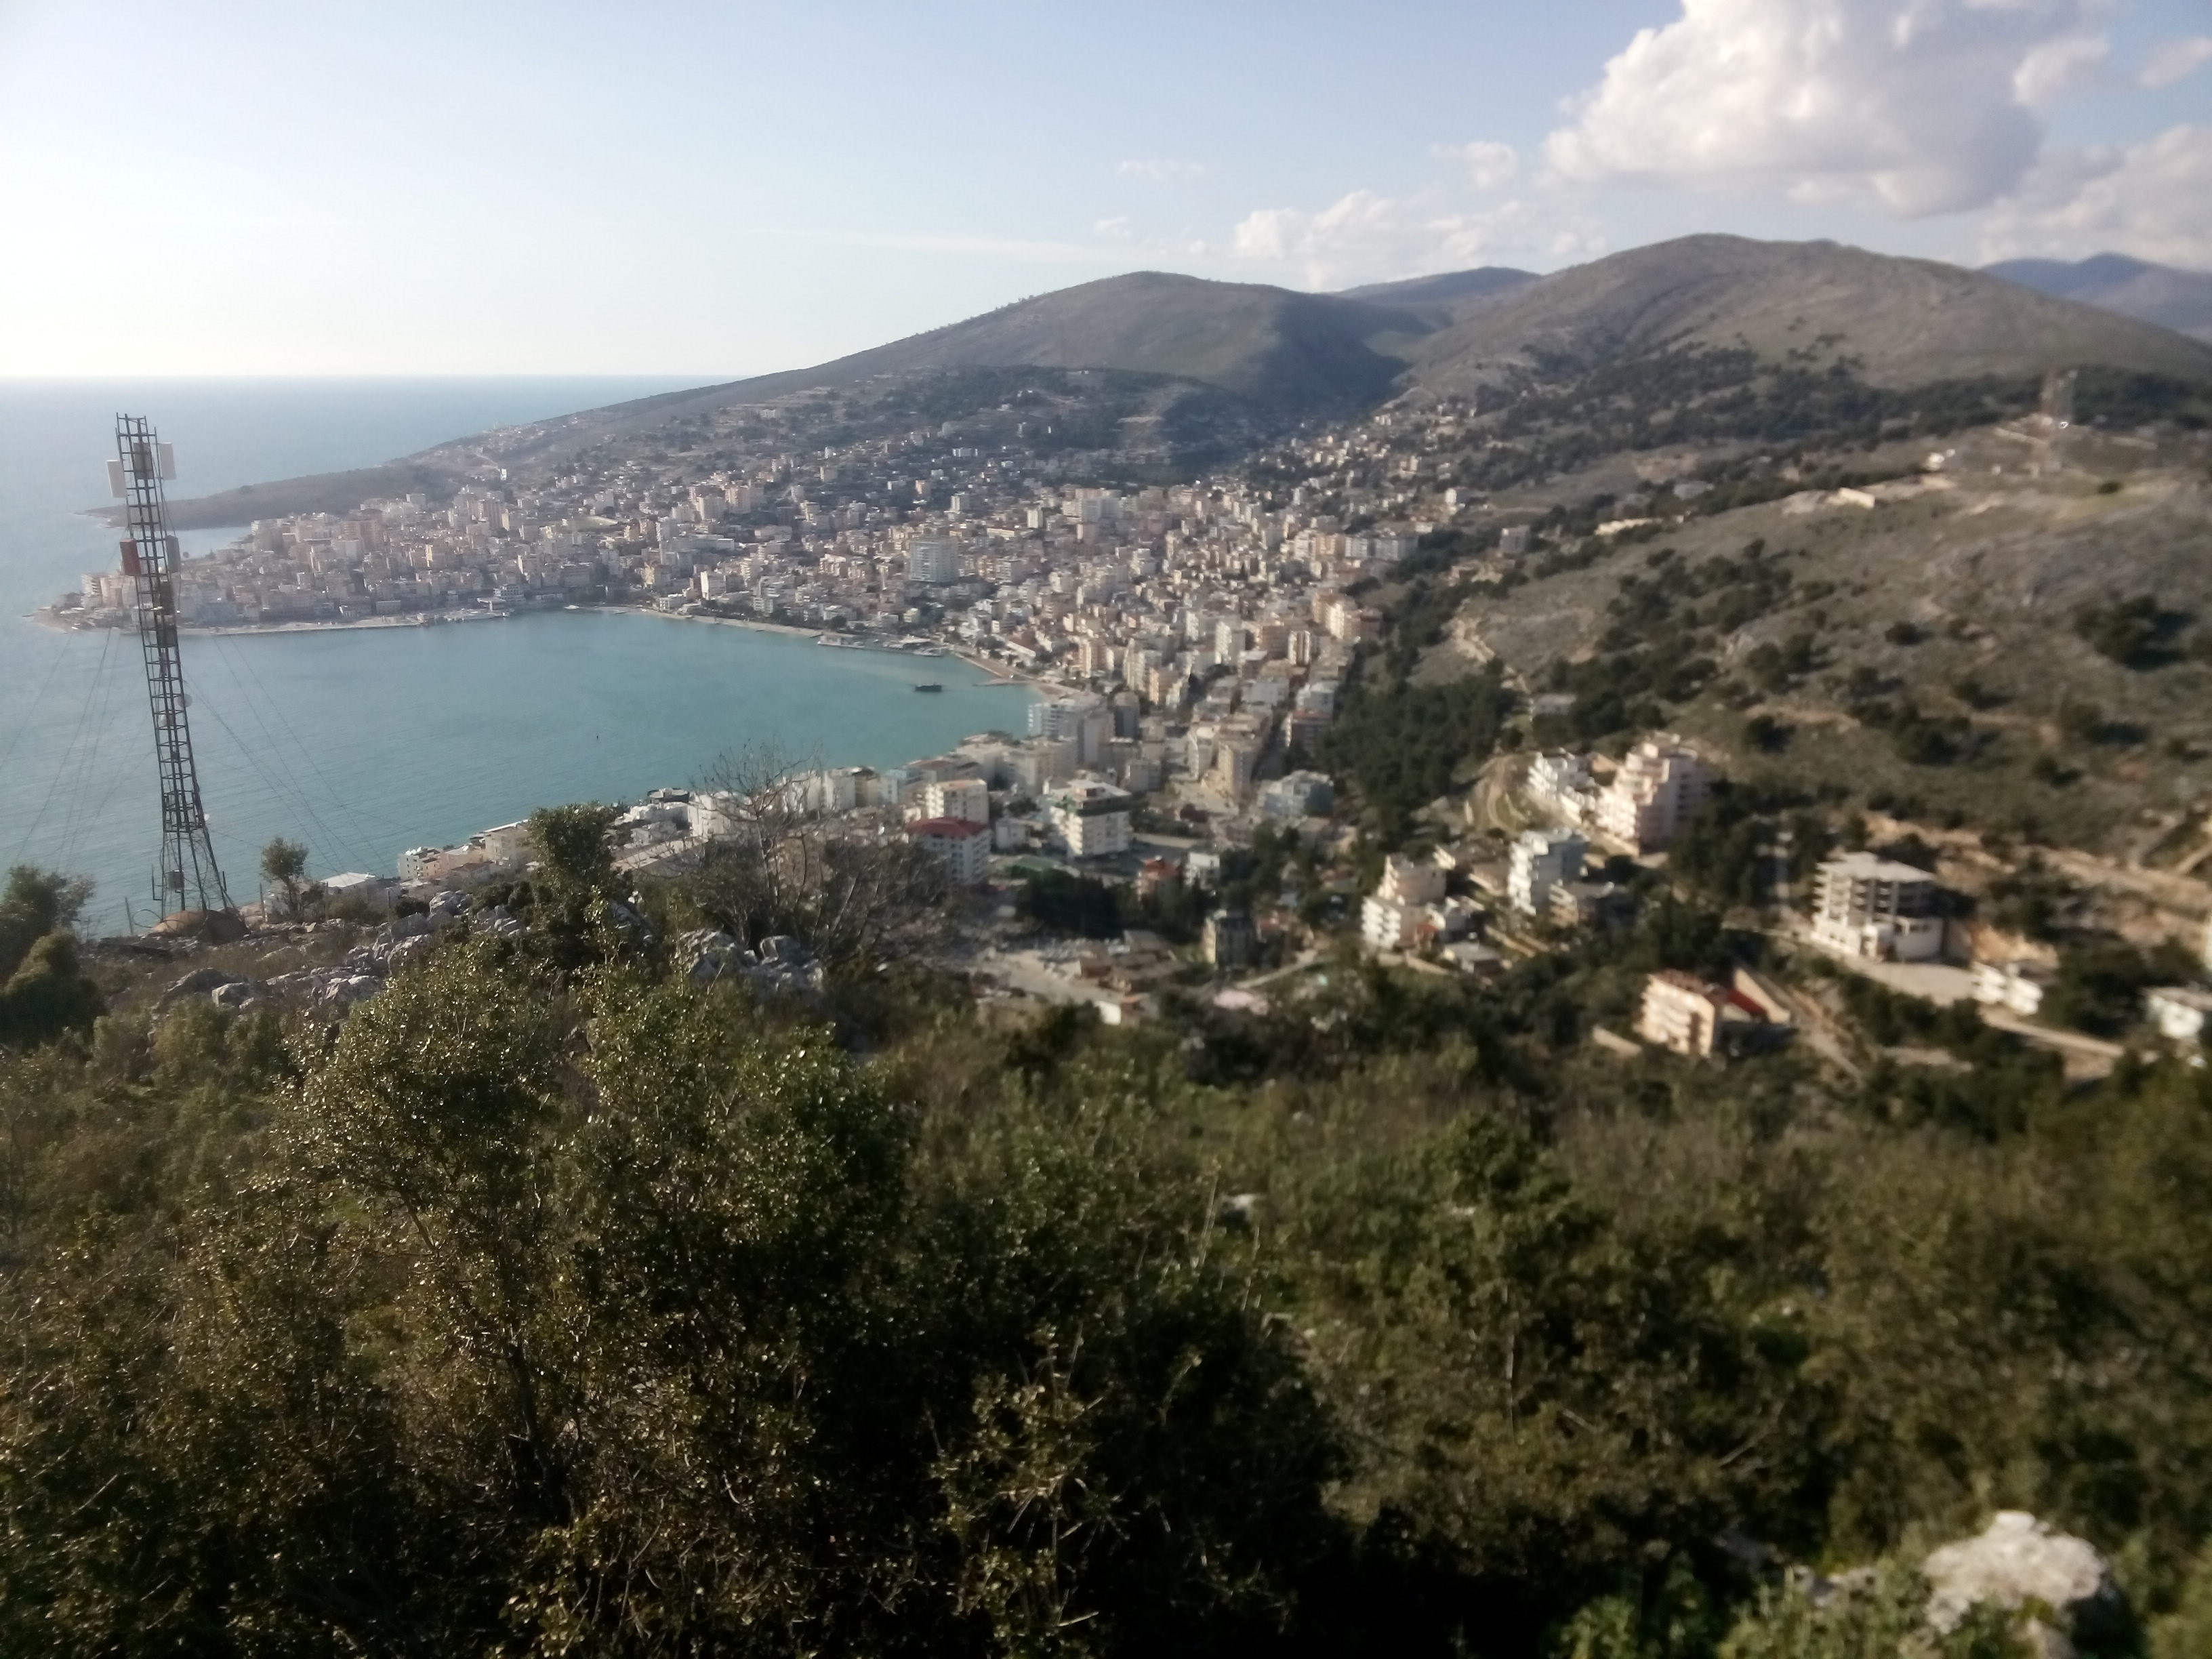 View from a hill over a small city lining a bay, backed by mountains